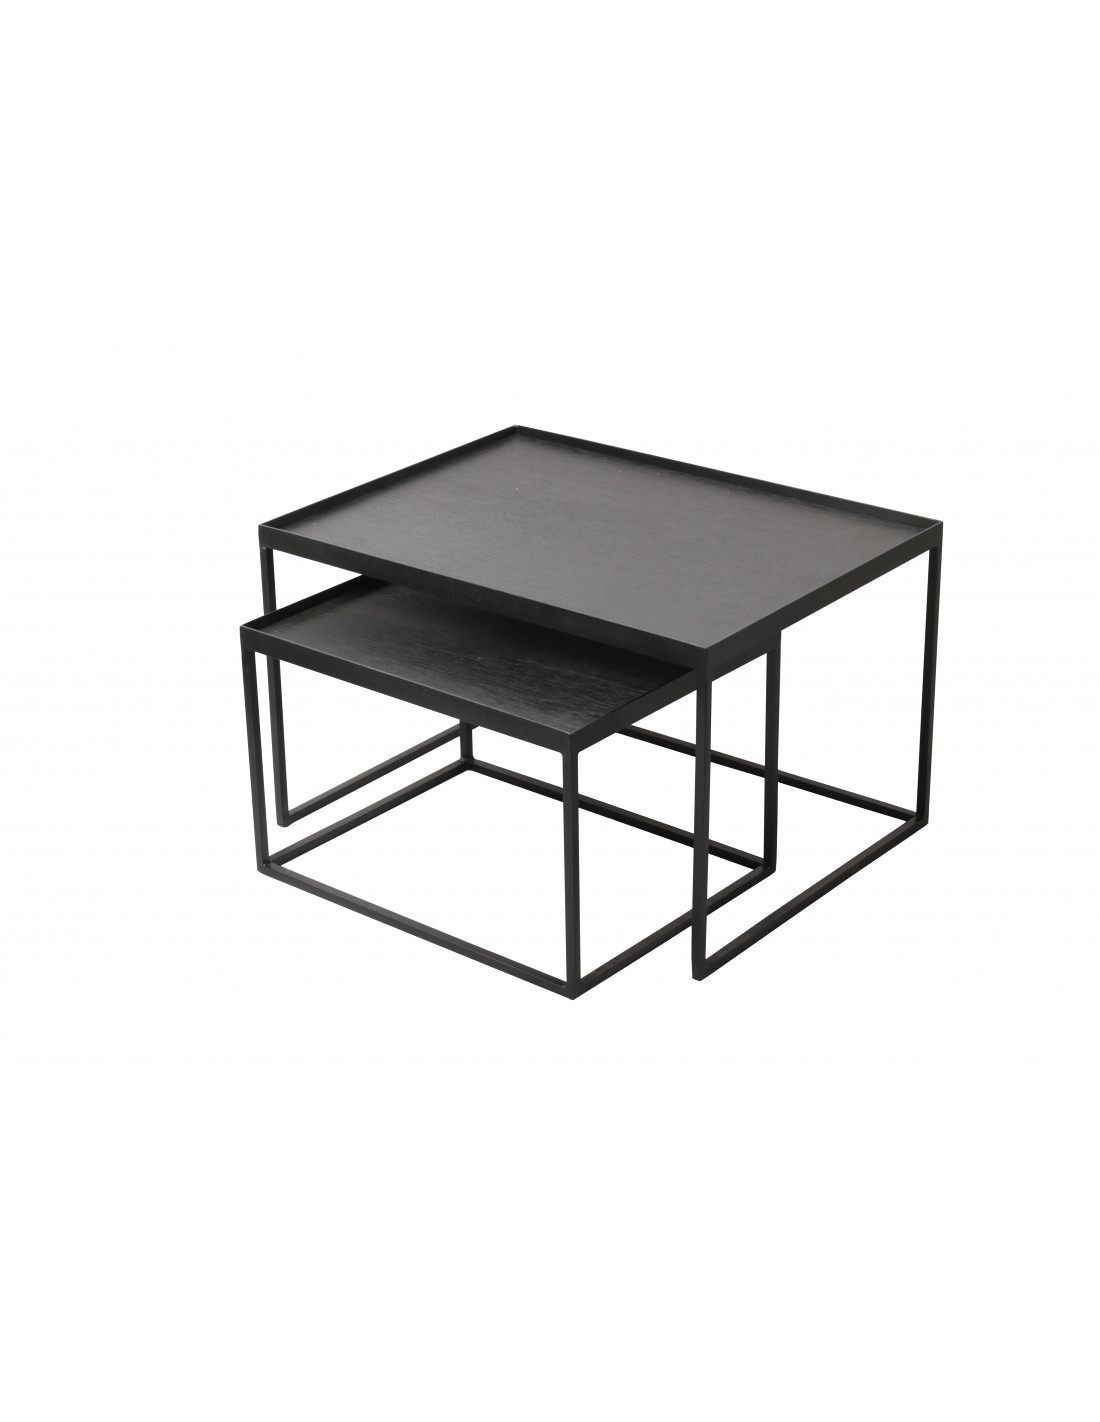 SUPPORT for Rectangular trays